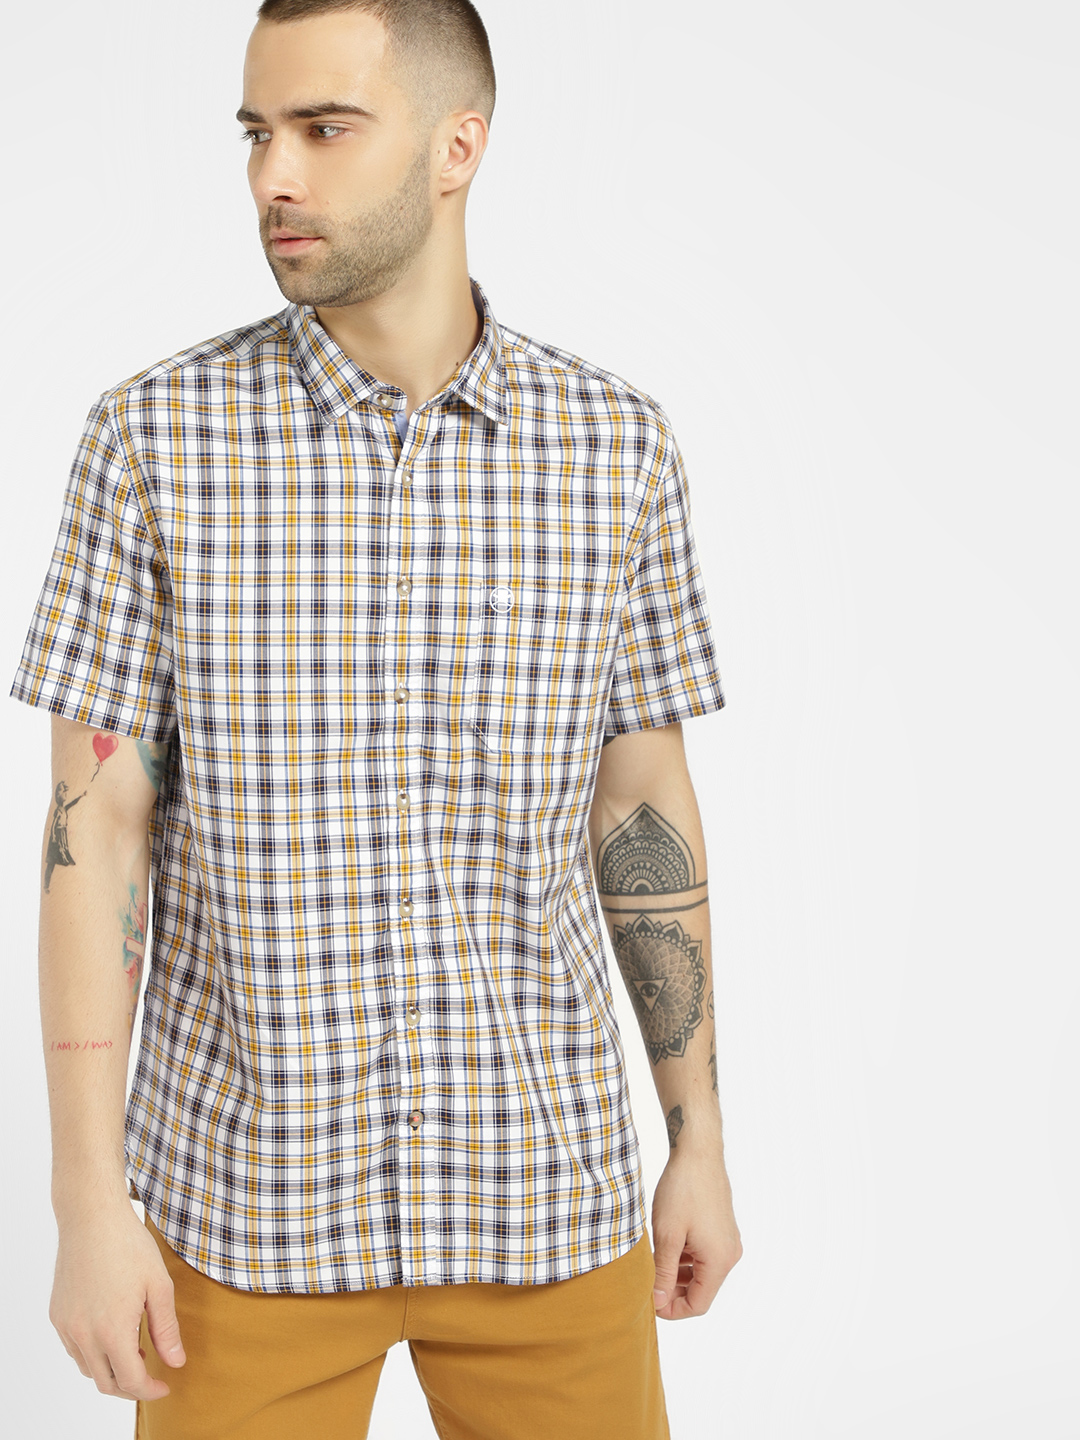 SCULLERS White Check Short Sleeve Casual Shirt 1